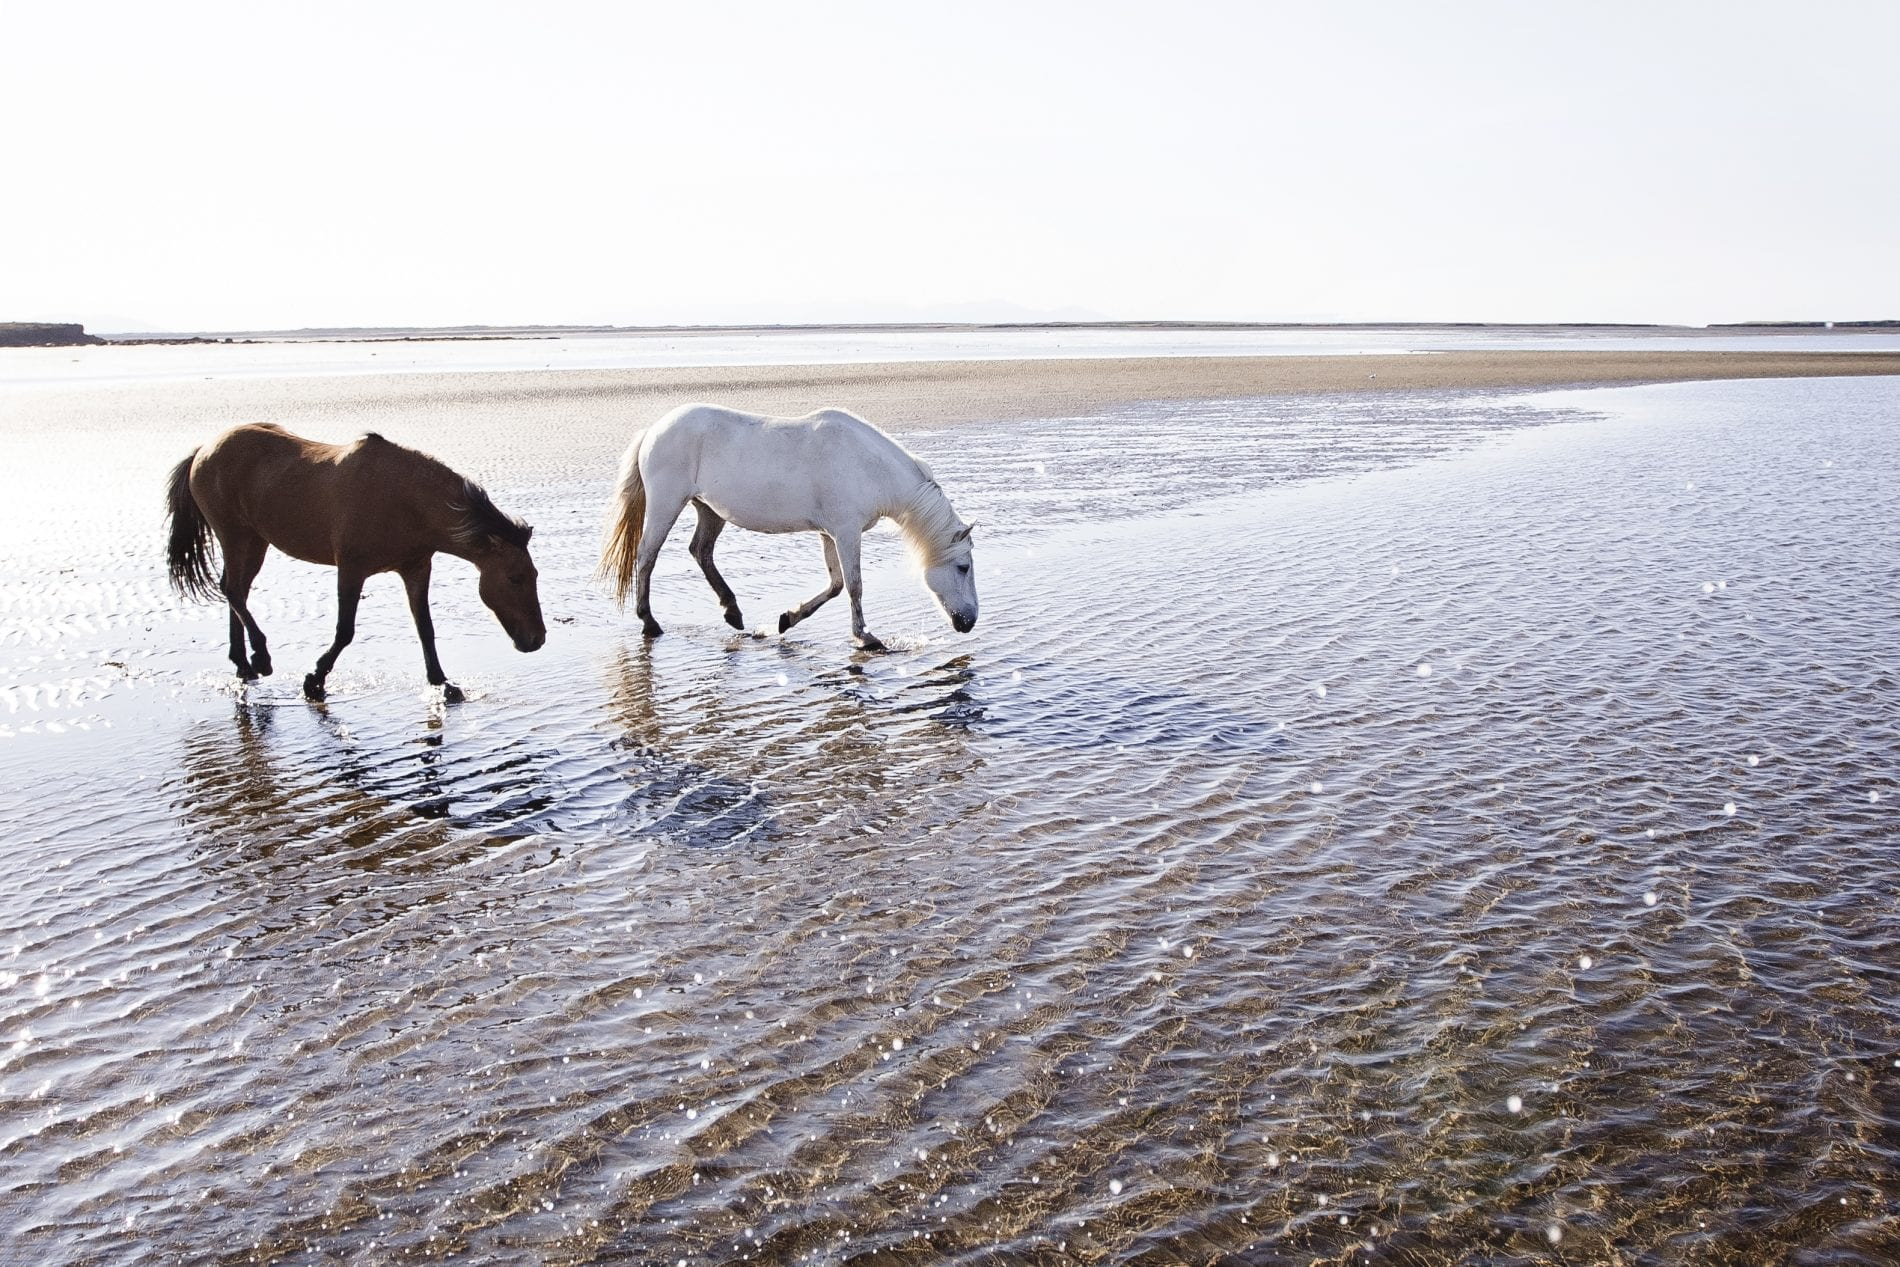 Two contrasted colored horses walking in water